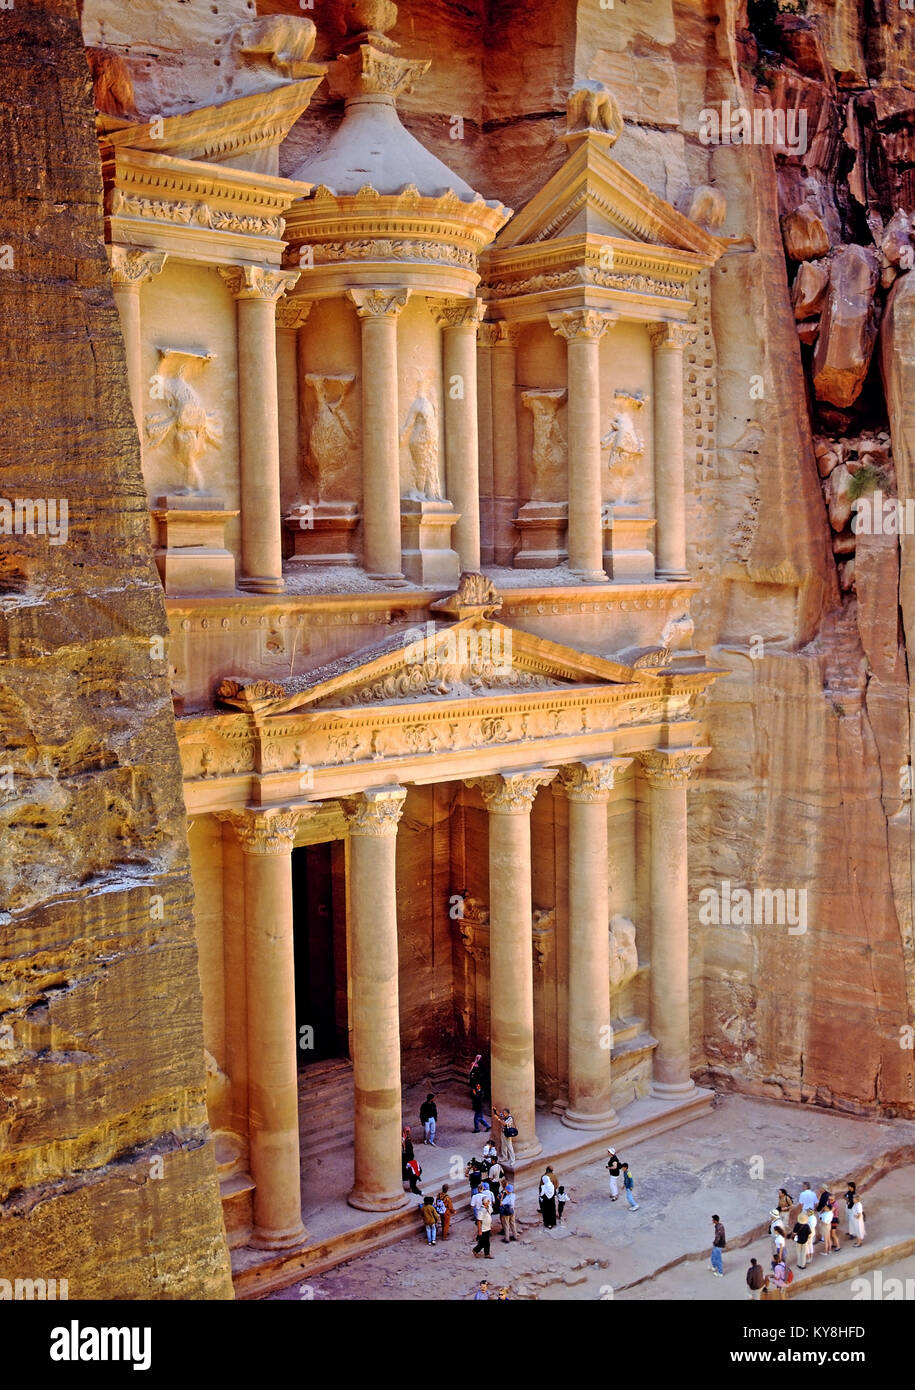 2232. The Khazneh (Treasury), Petra, Ma'an Gov, Jordan Stock Photo